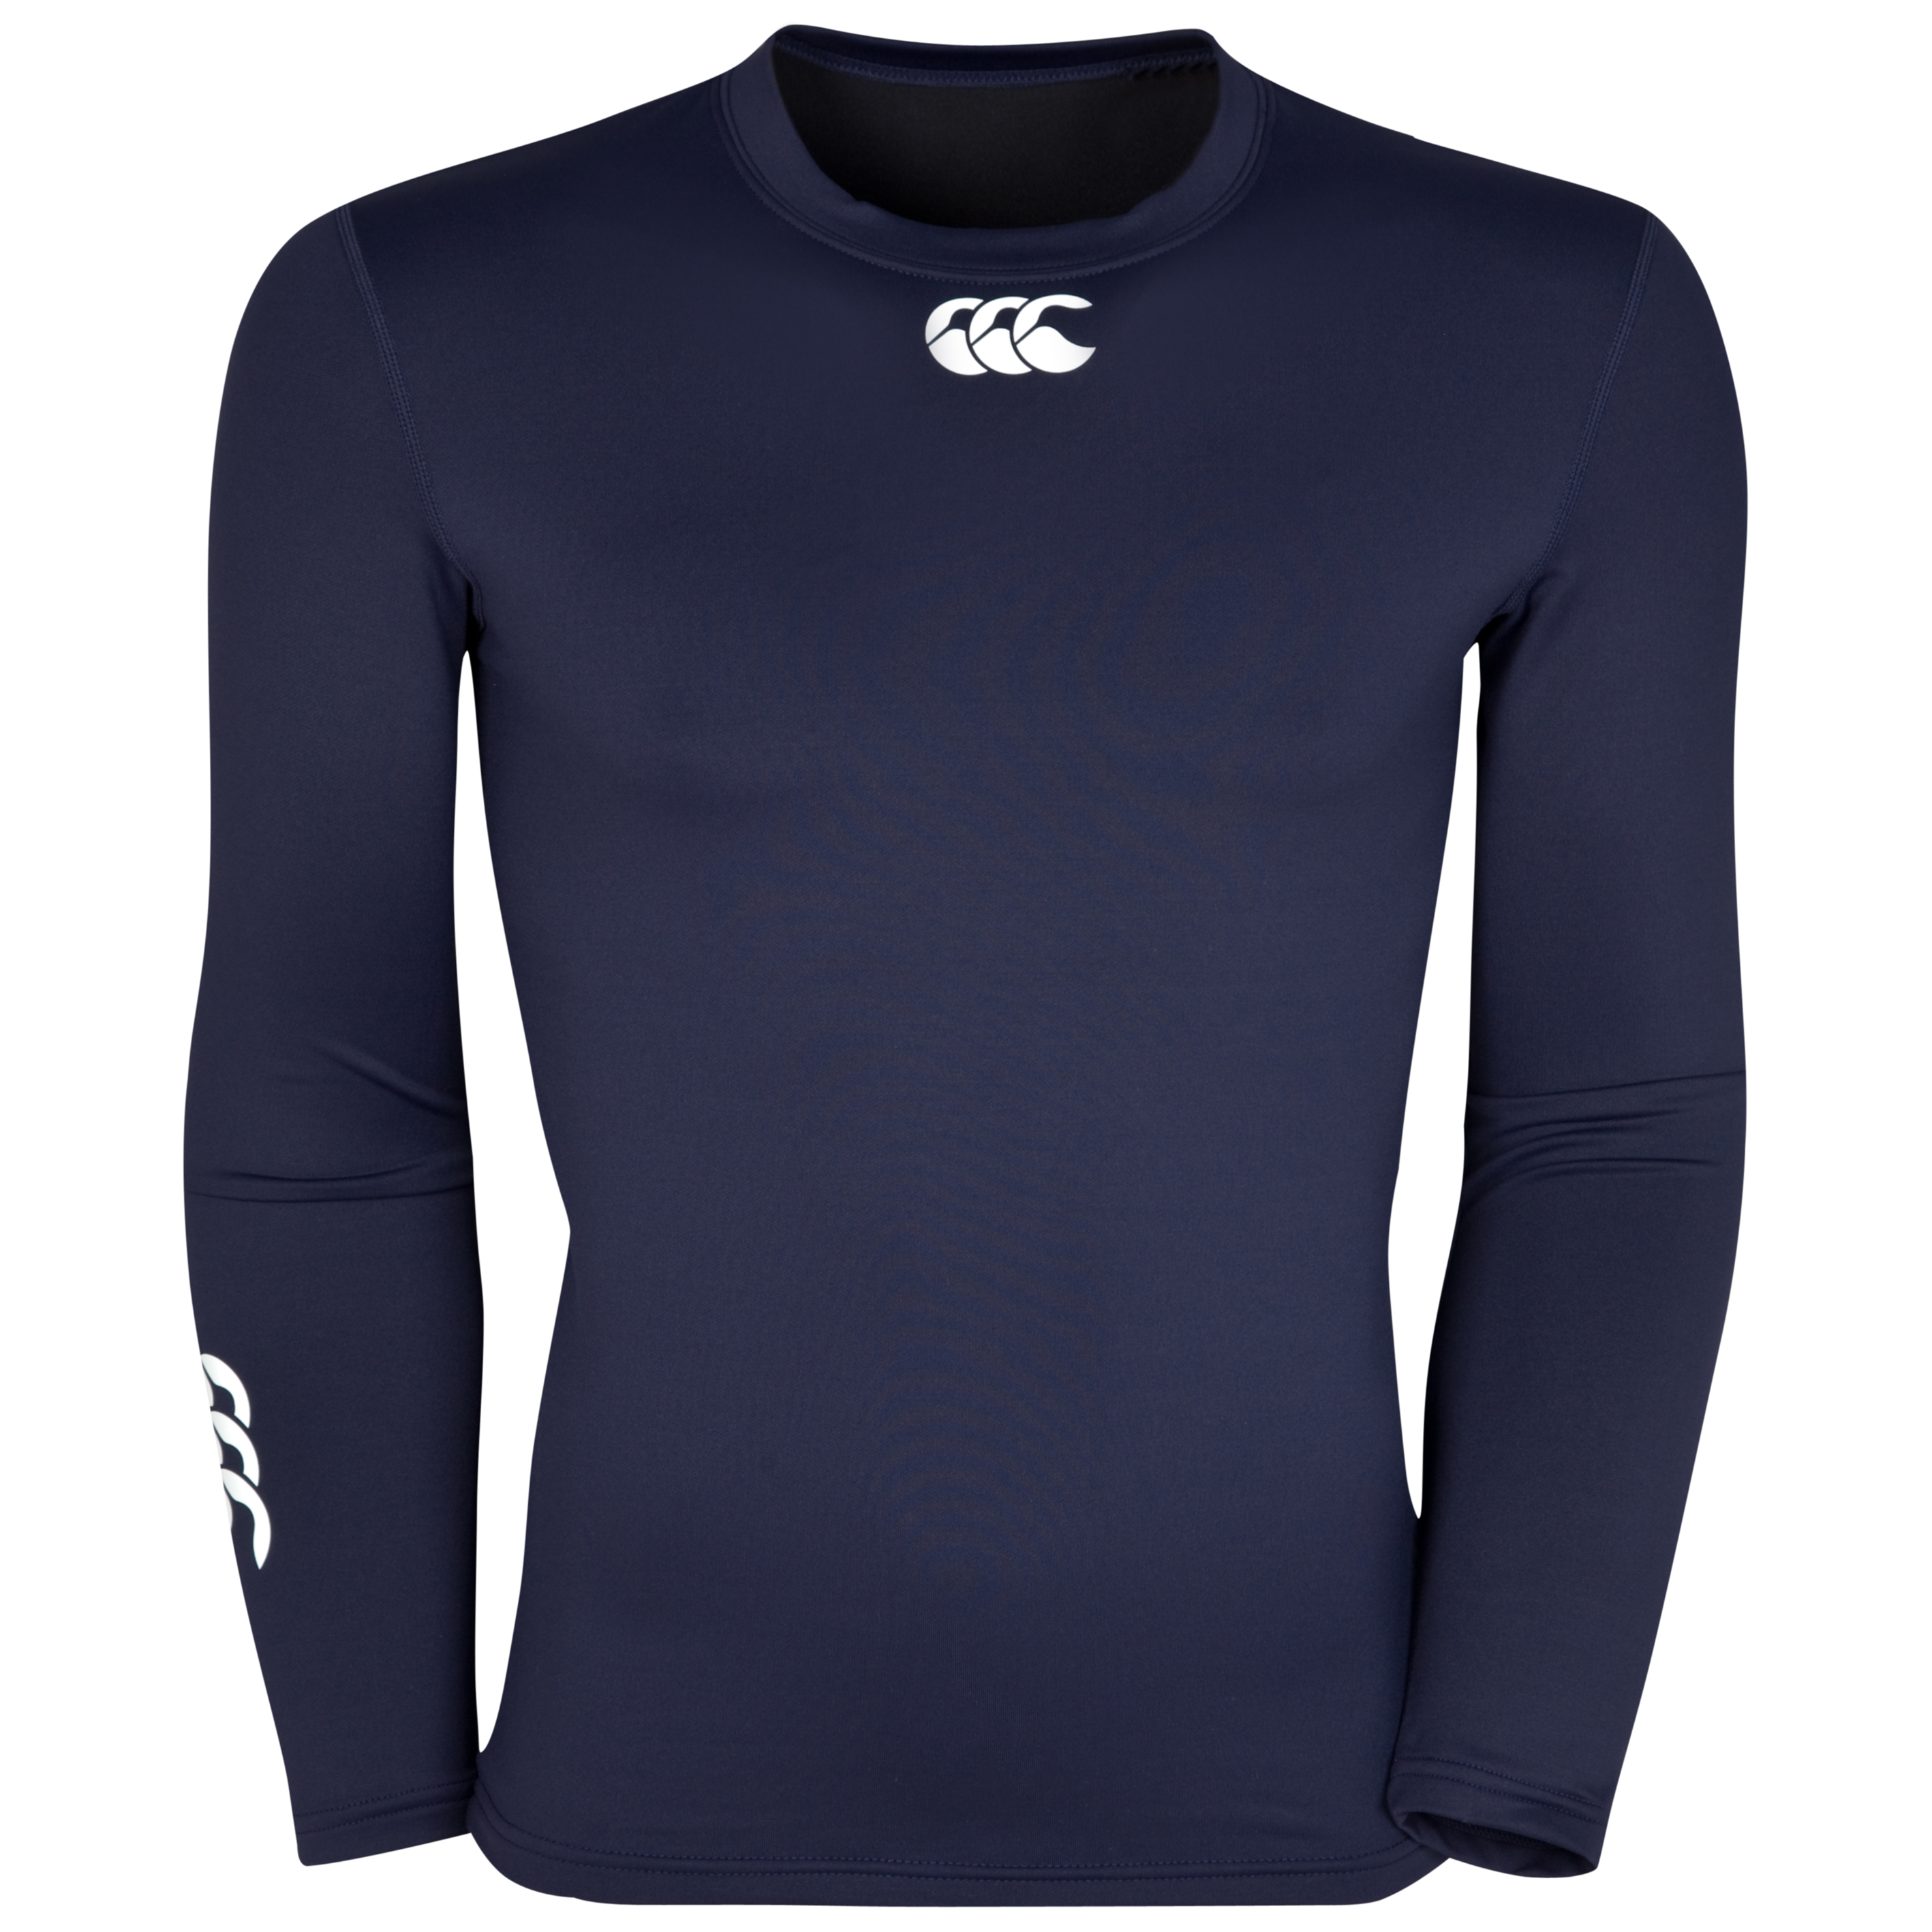 Canterbury Cold Long Sleeve Baselayer Top - Navy